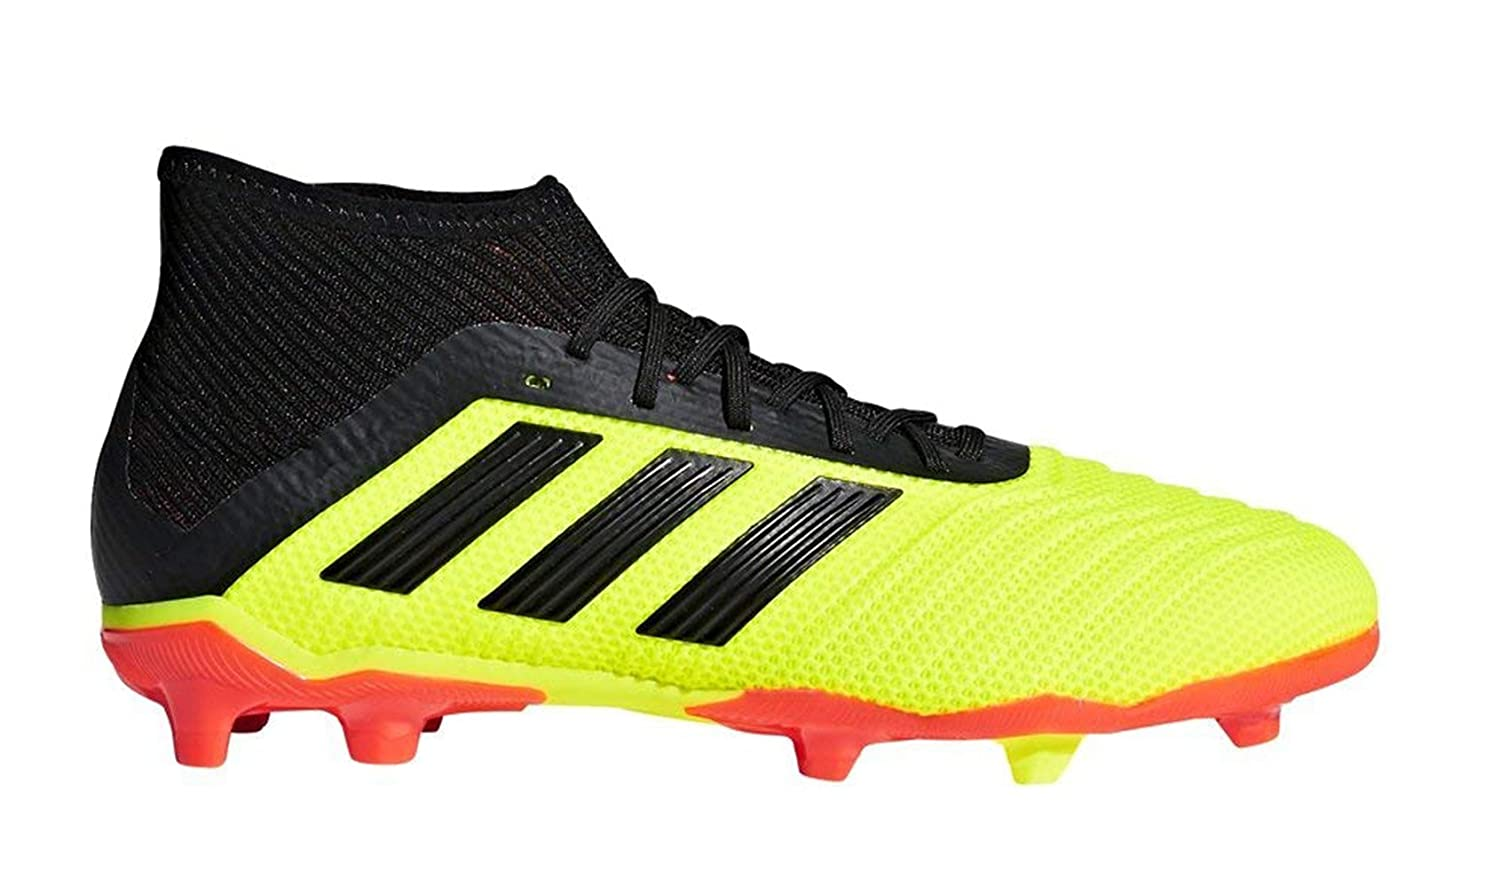 51aca9173 Amazon.com  adidas Predator 18.1 Youth FG Soccer Cleats  Shoes